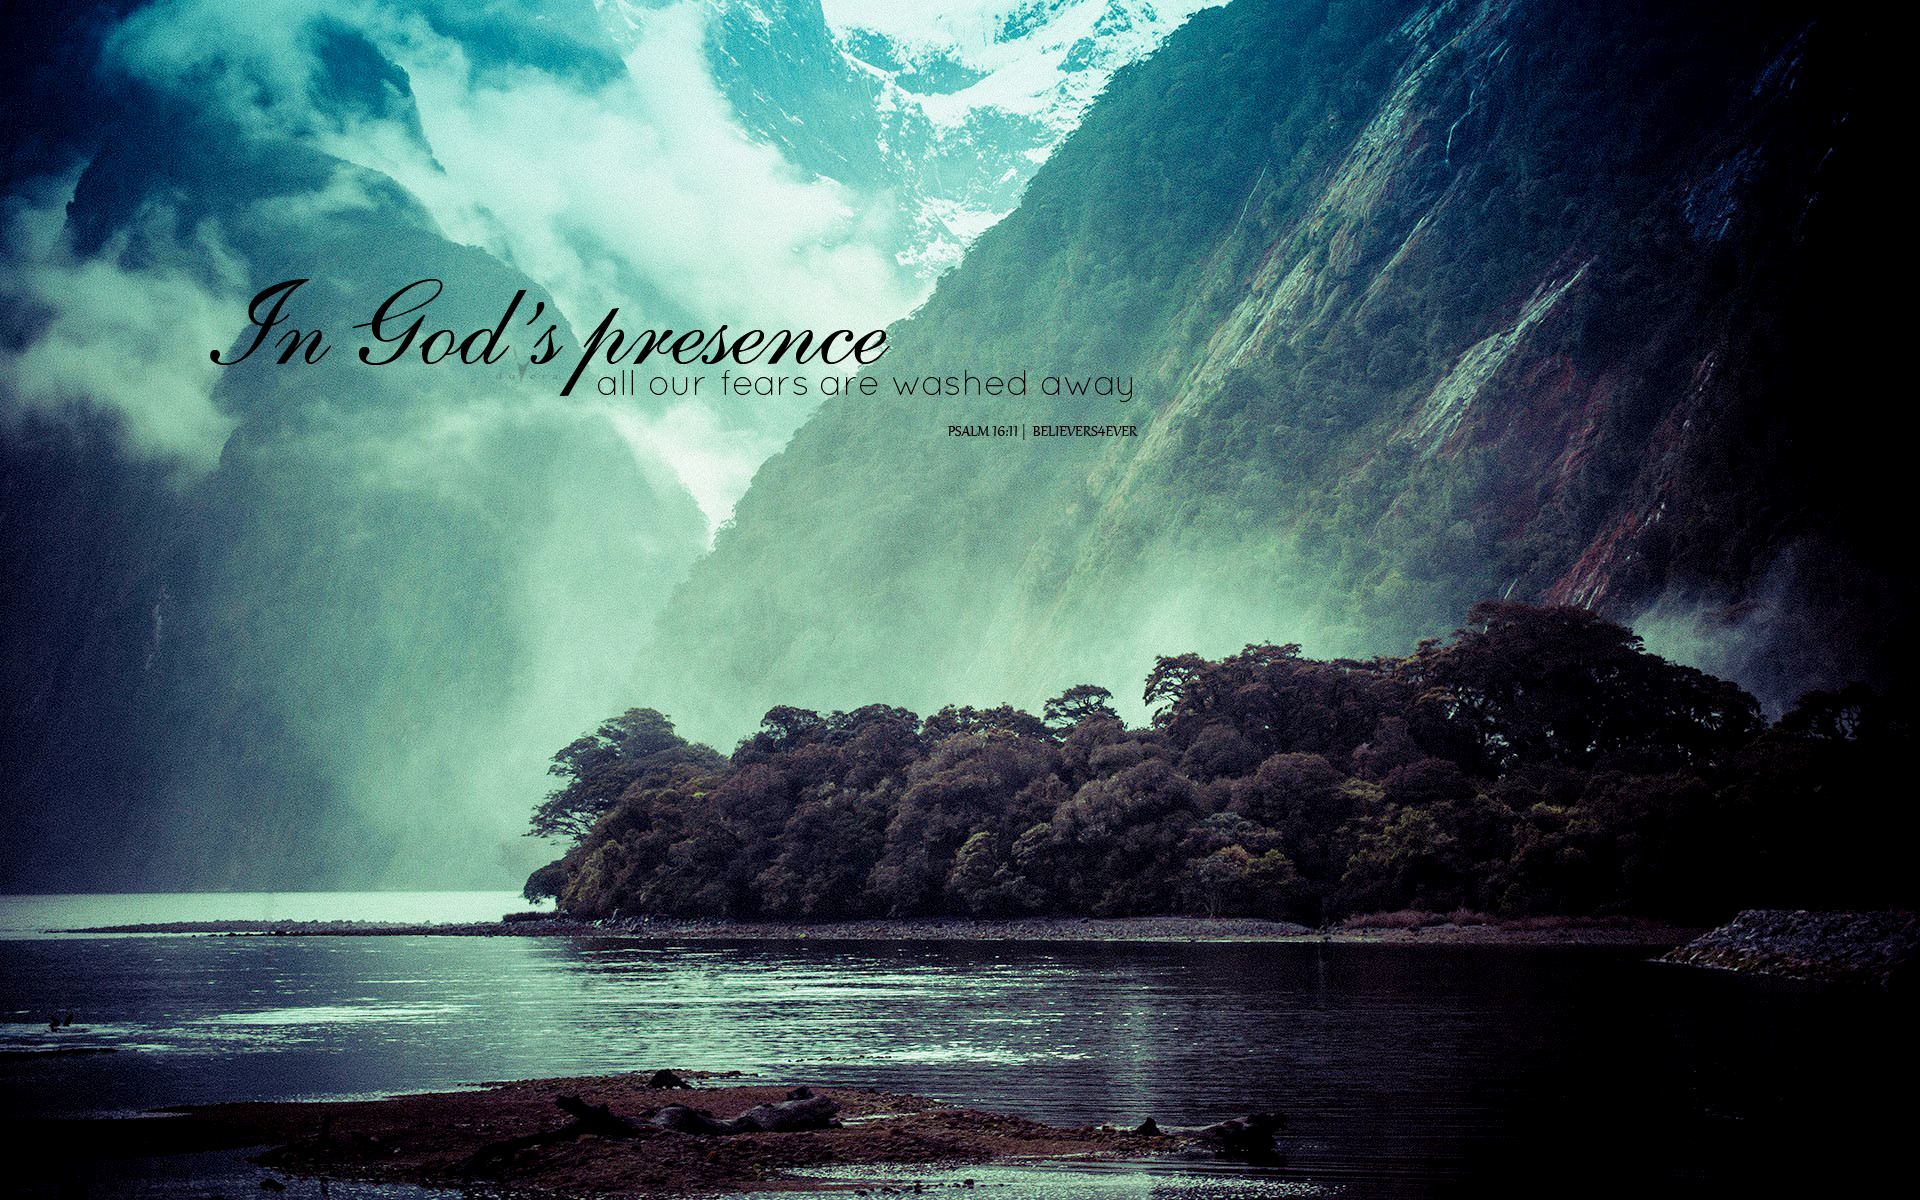 In God's presence Christian wallpaper, Free christian